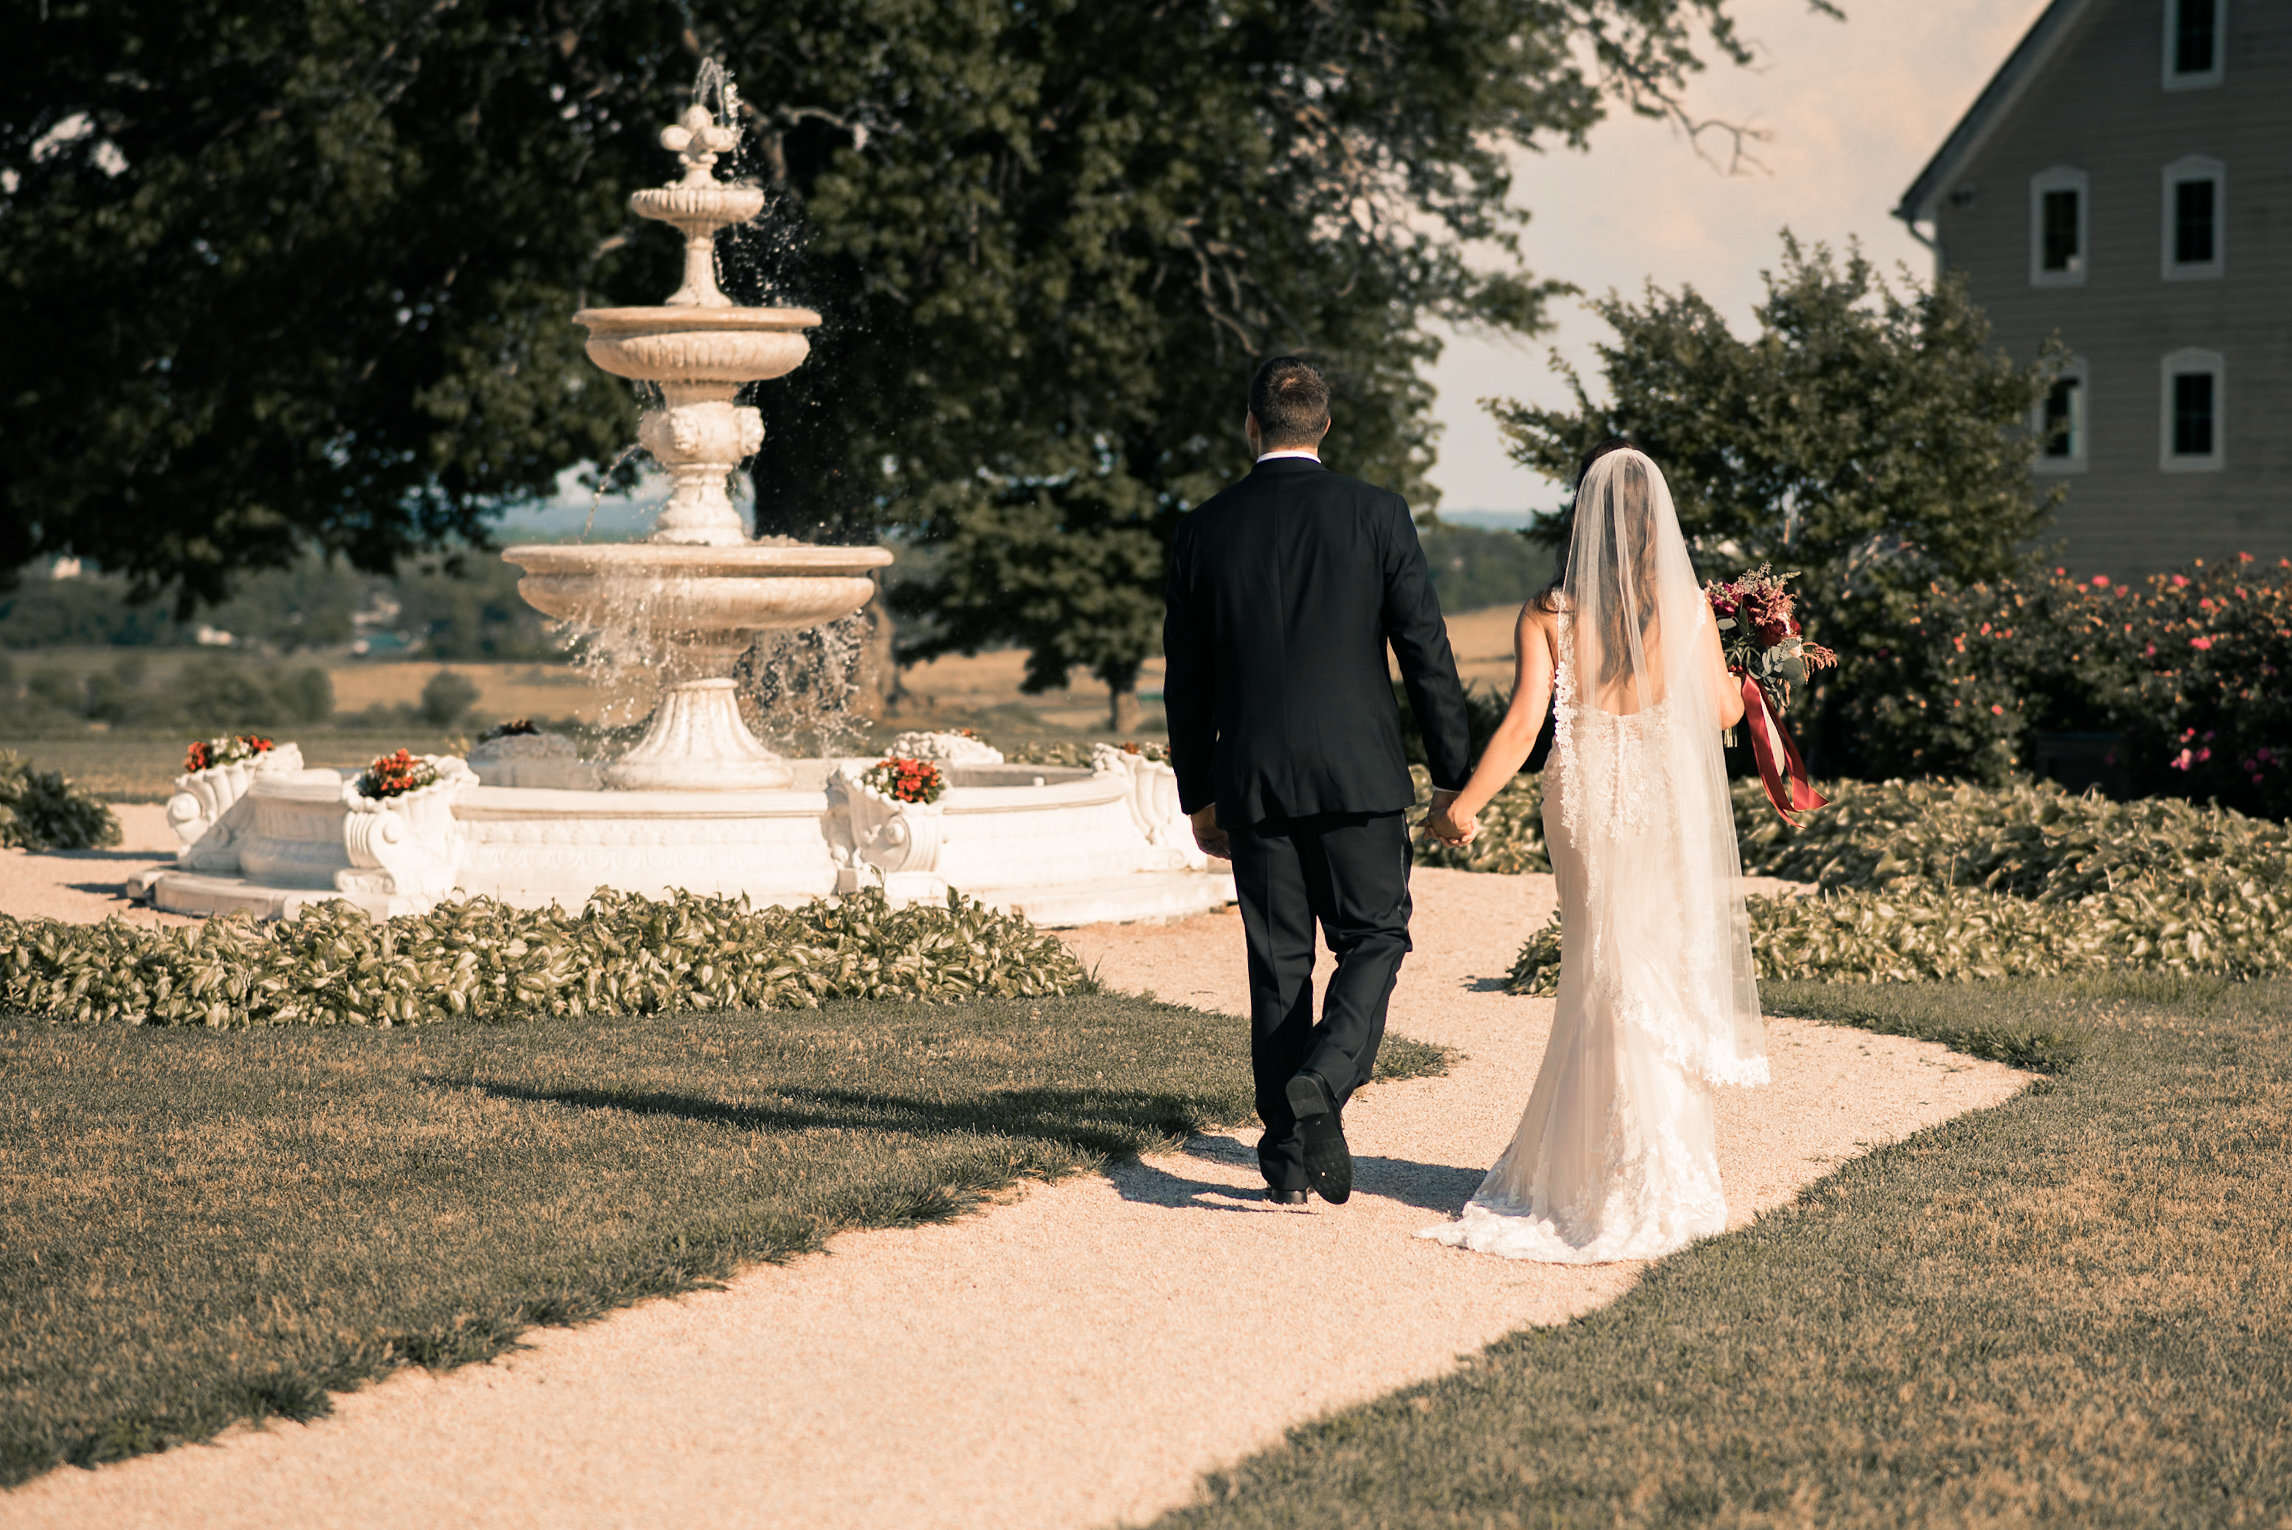 Bride and groom walking by fountain